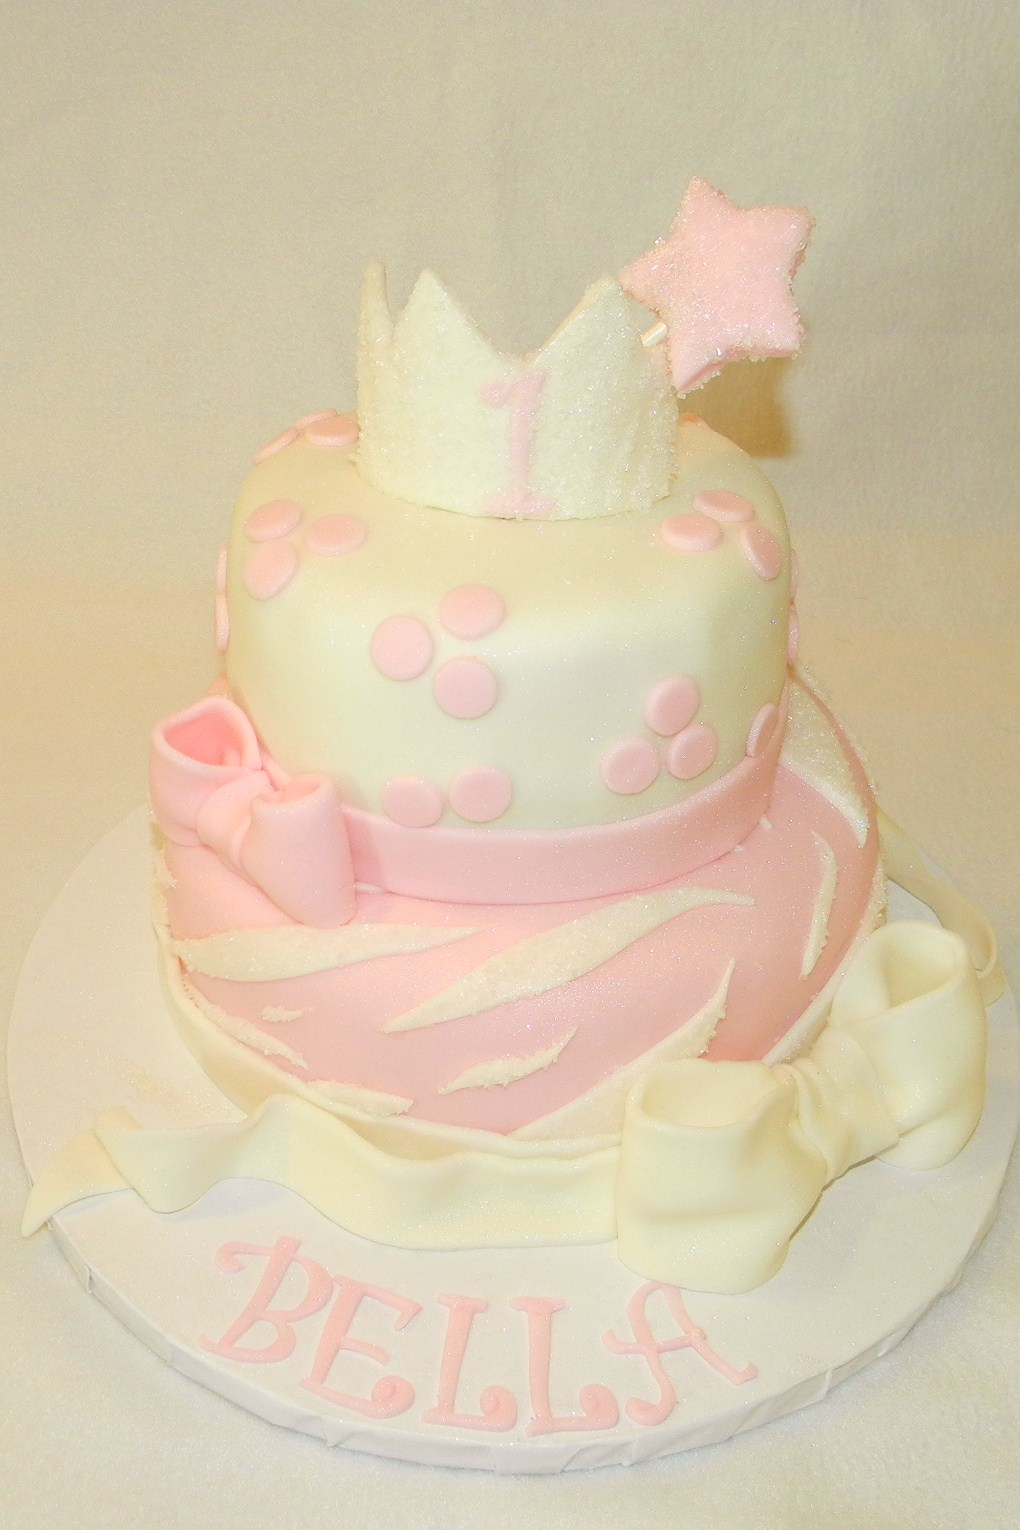 Piece of Cake!: Princess Cake - 1st Birthday